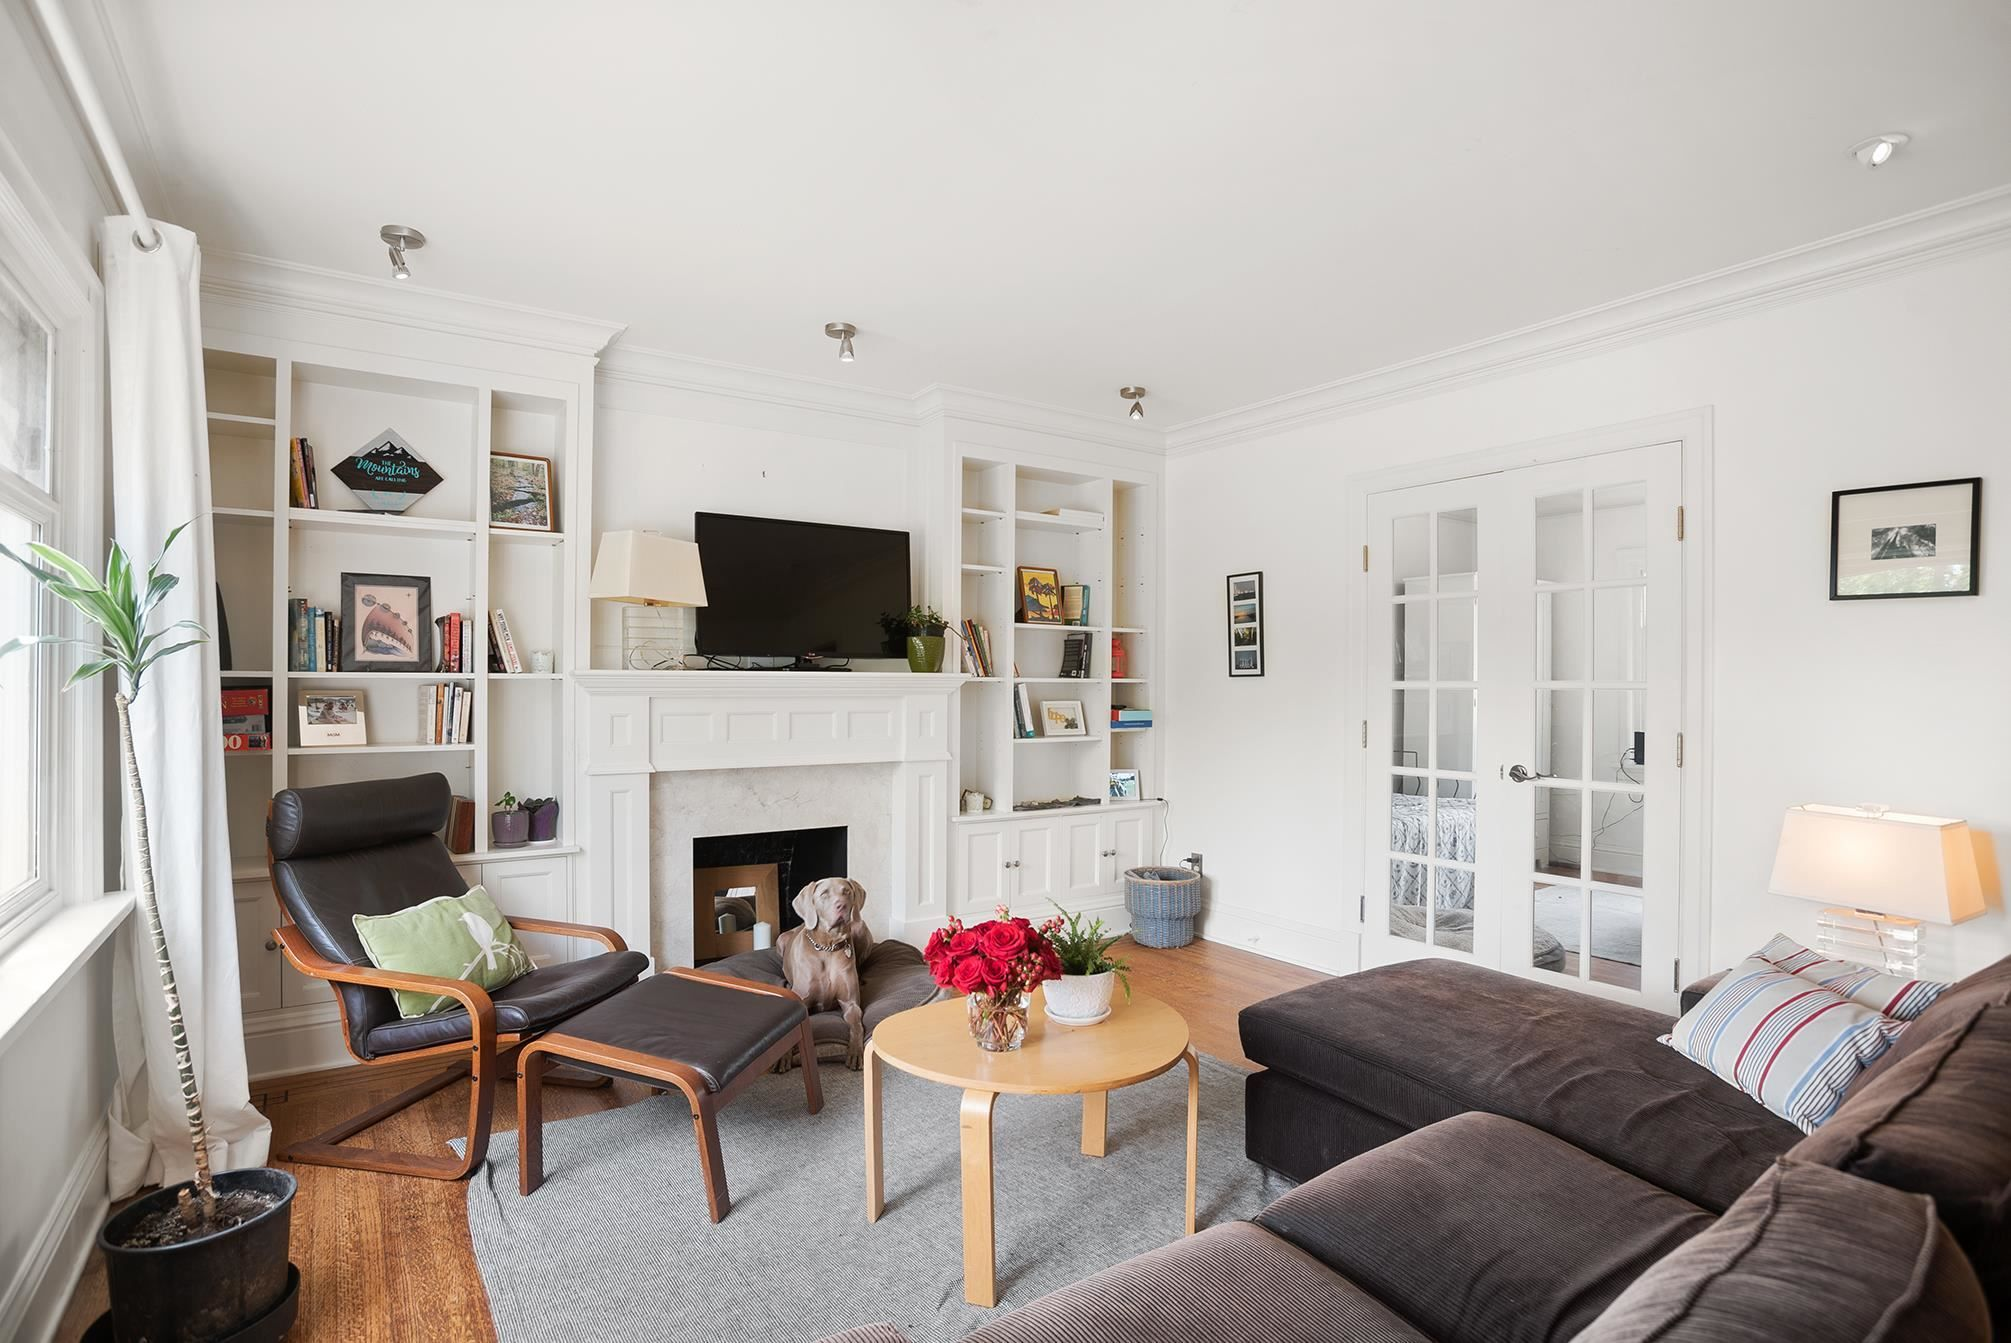 Main Photo: 3919 W KING EDWARD Avenue in Vancouver: Dunbar House for sale (Vancouver West)  : MLS®# R2607742